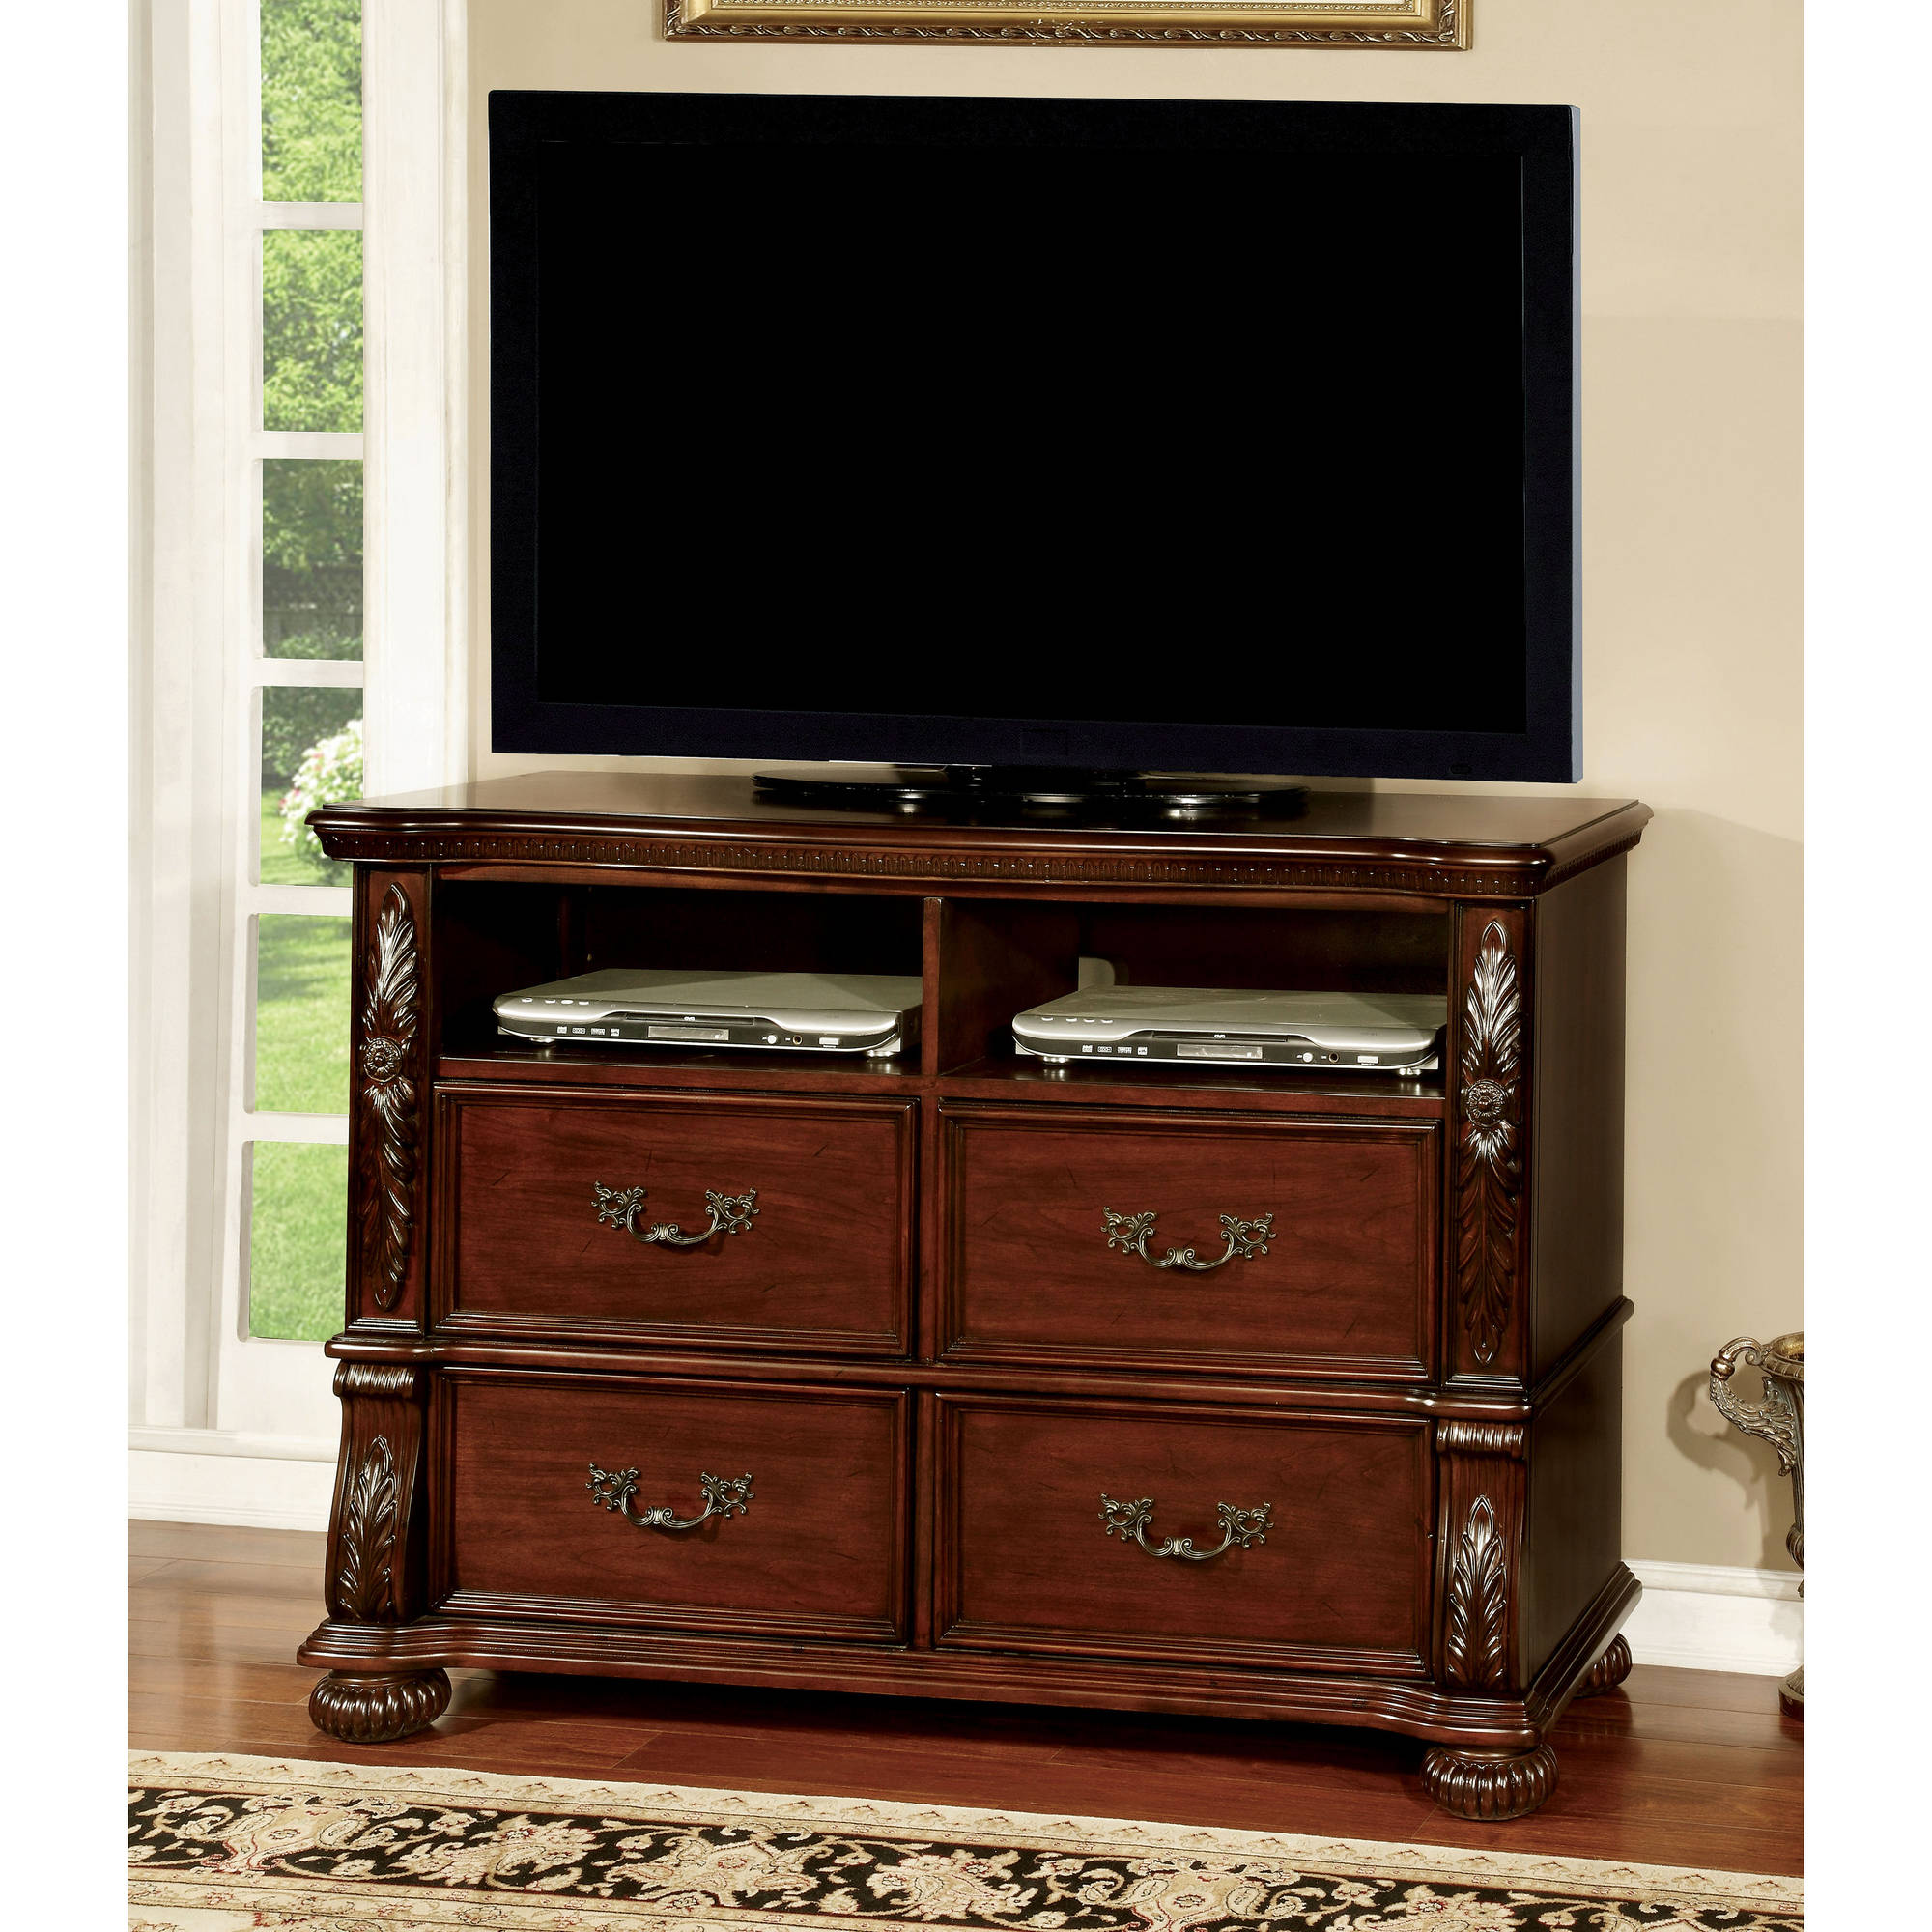 Furniture of America Hamlin Traditional Media Chest, Brown Cherry